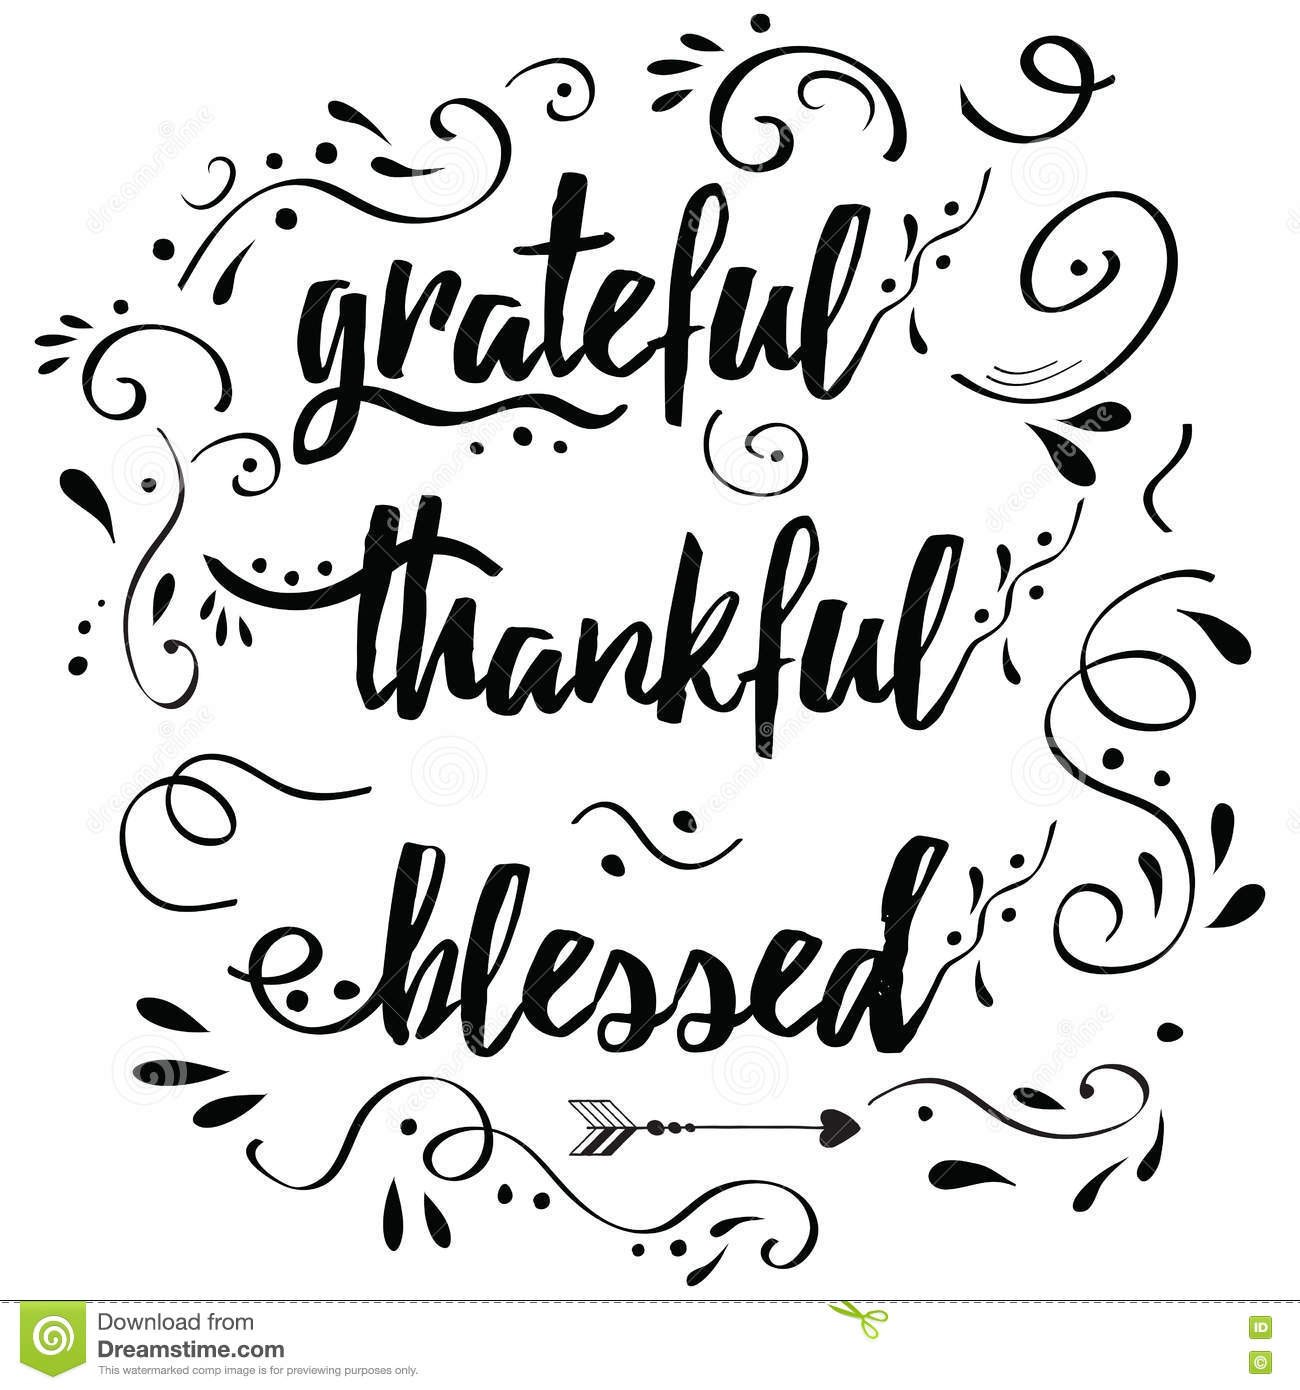 Thankful Grateful Blessed Vector Hand Drawn Card Decorated